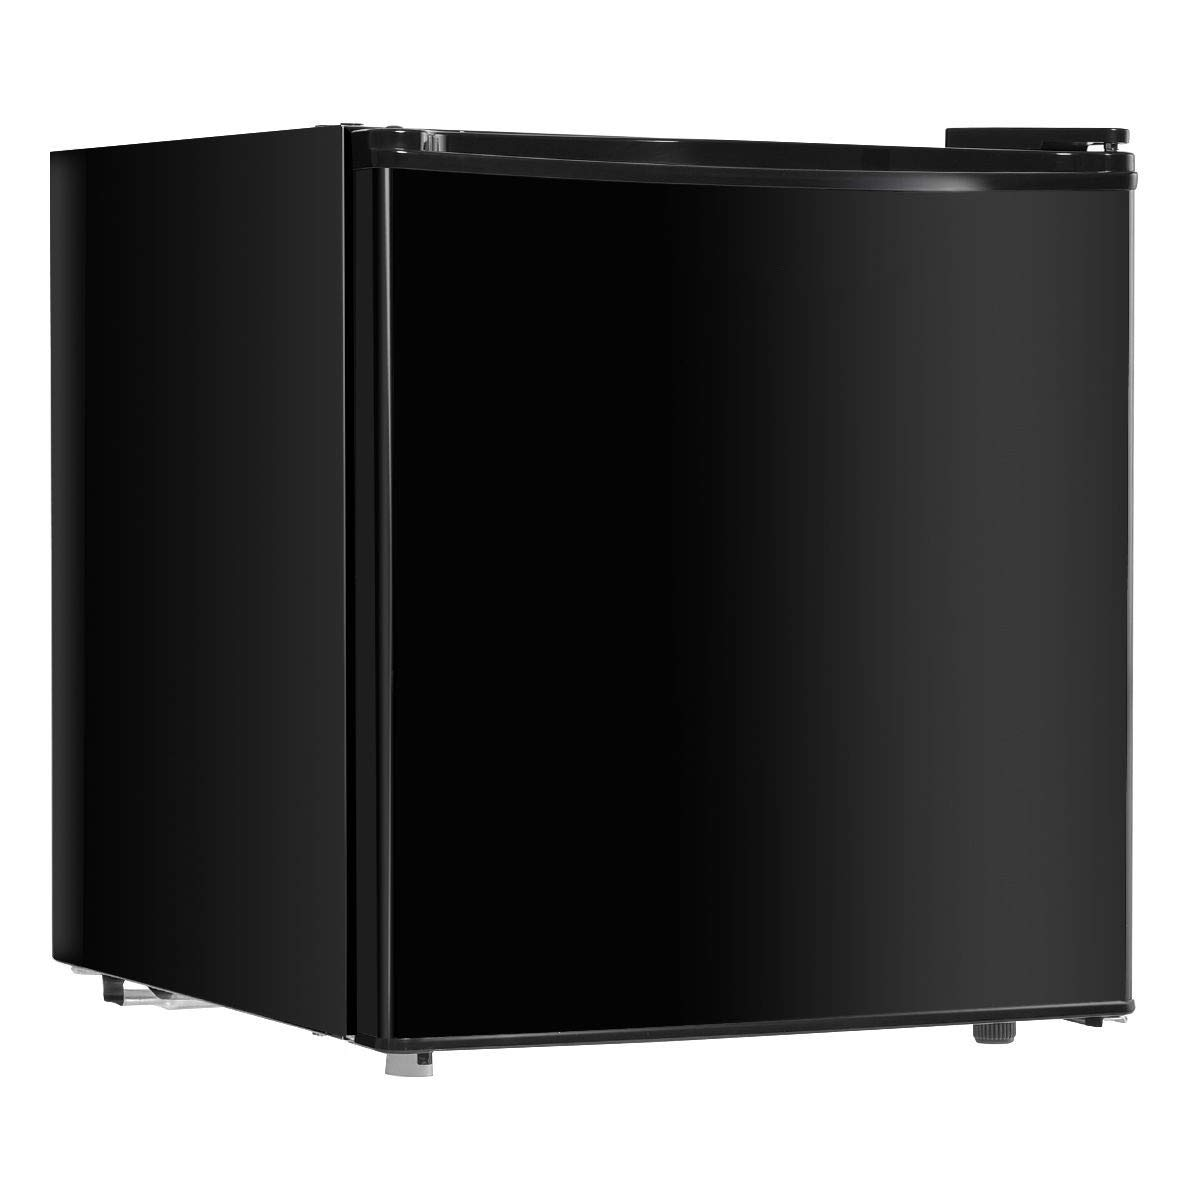 LHONE Compact Mini 1.7 cu. ft. Single Door Refrigerator Cold-rolled Sheet Refrigerator Organizer Portable with Freezer Cooler (Black)